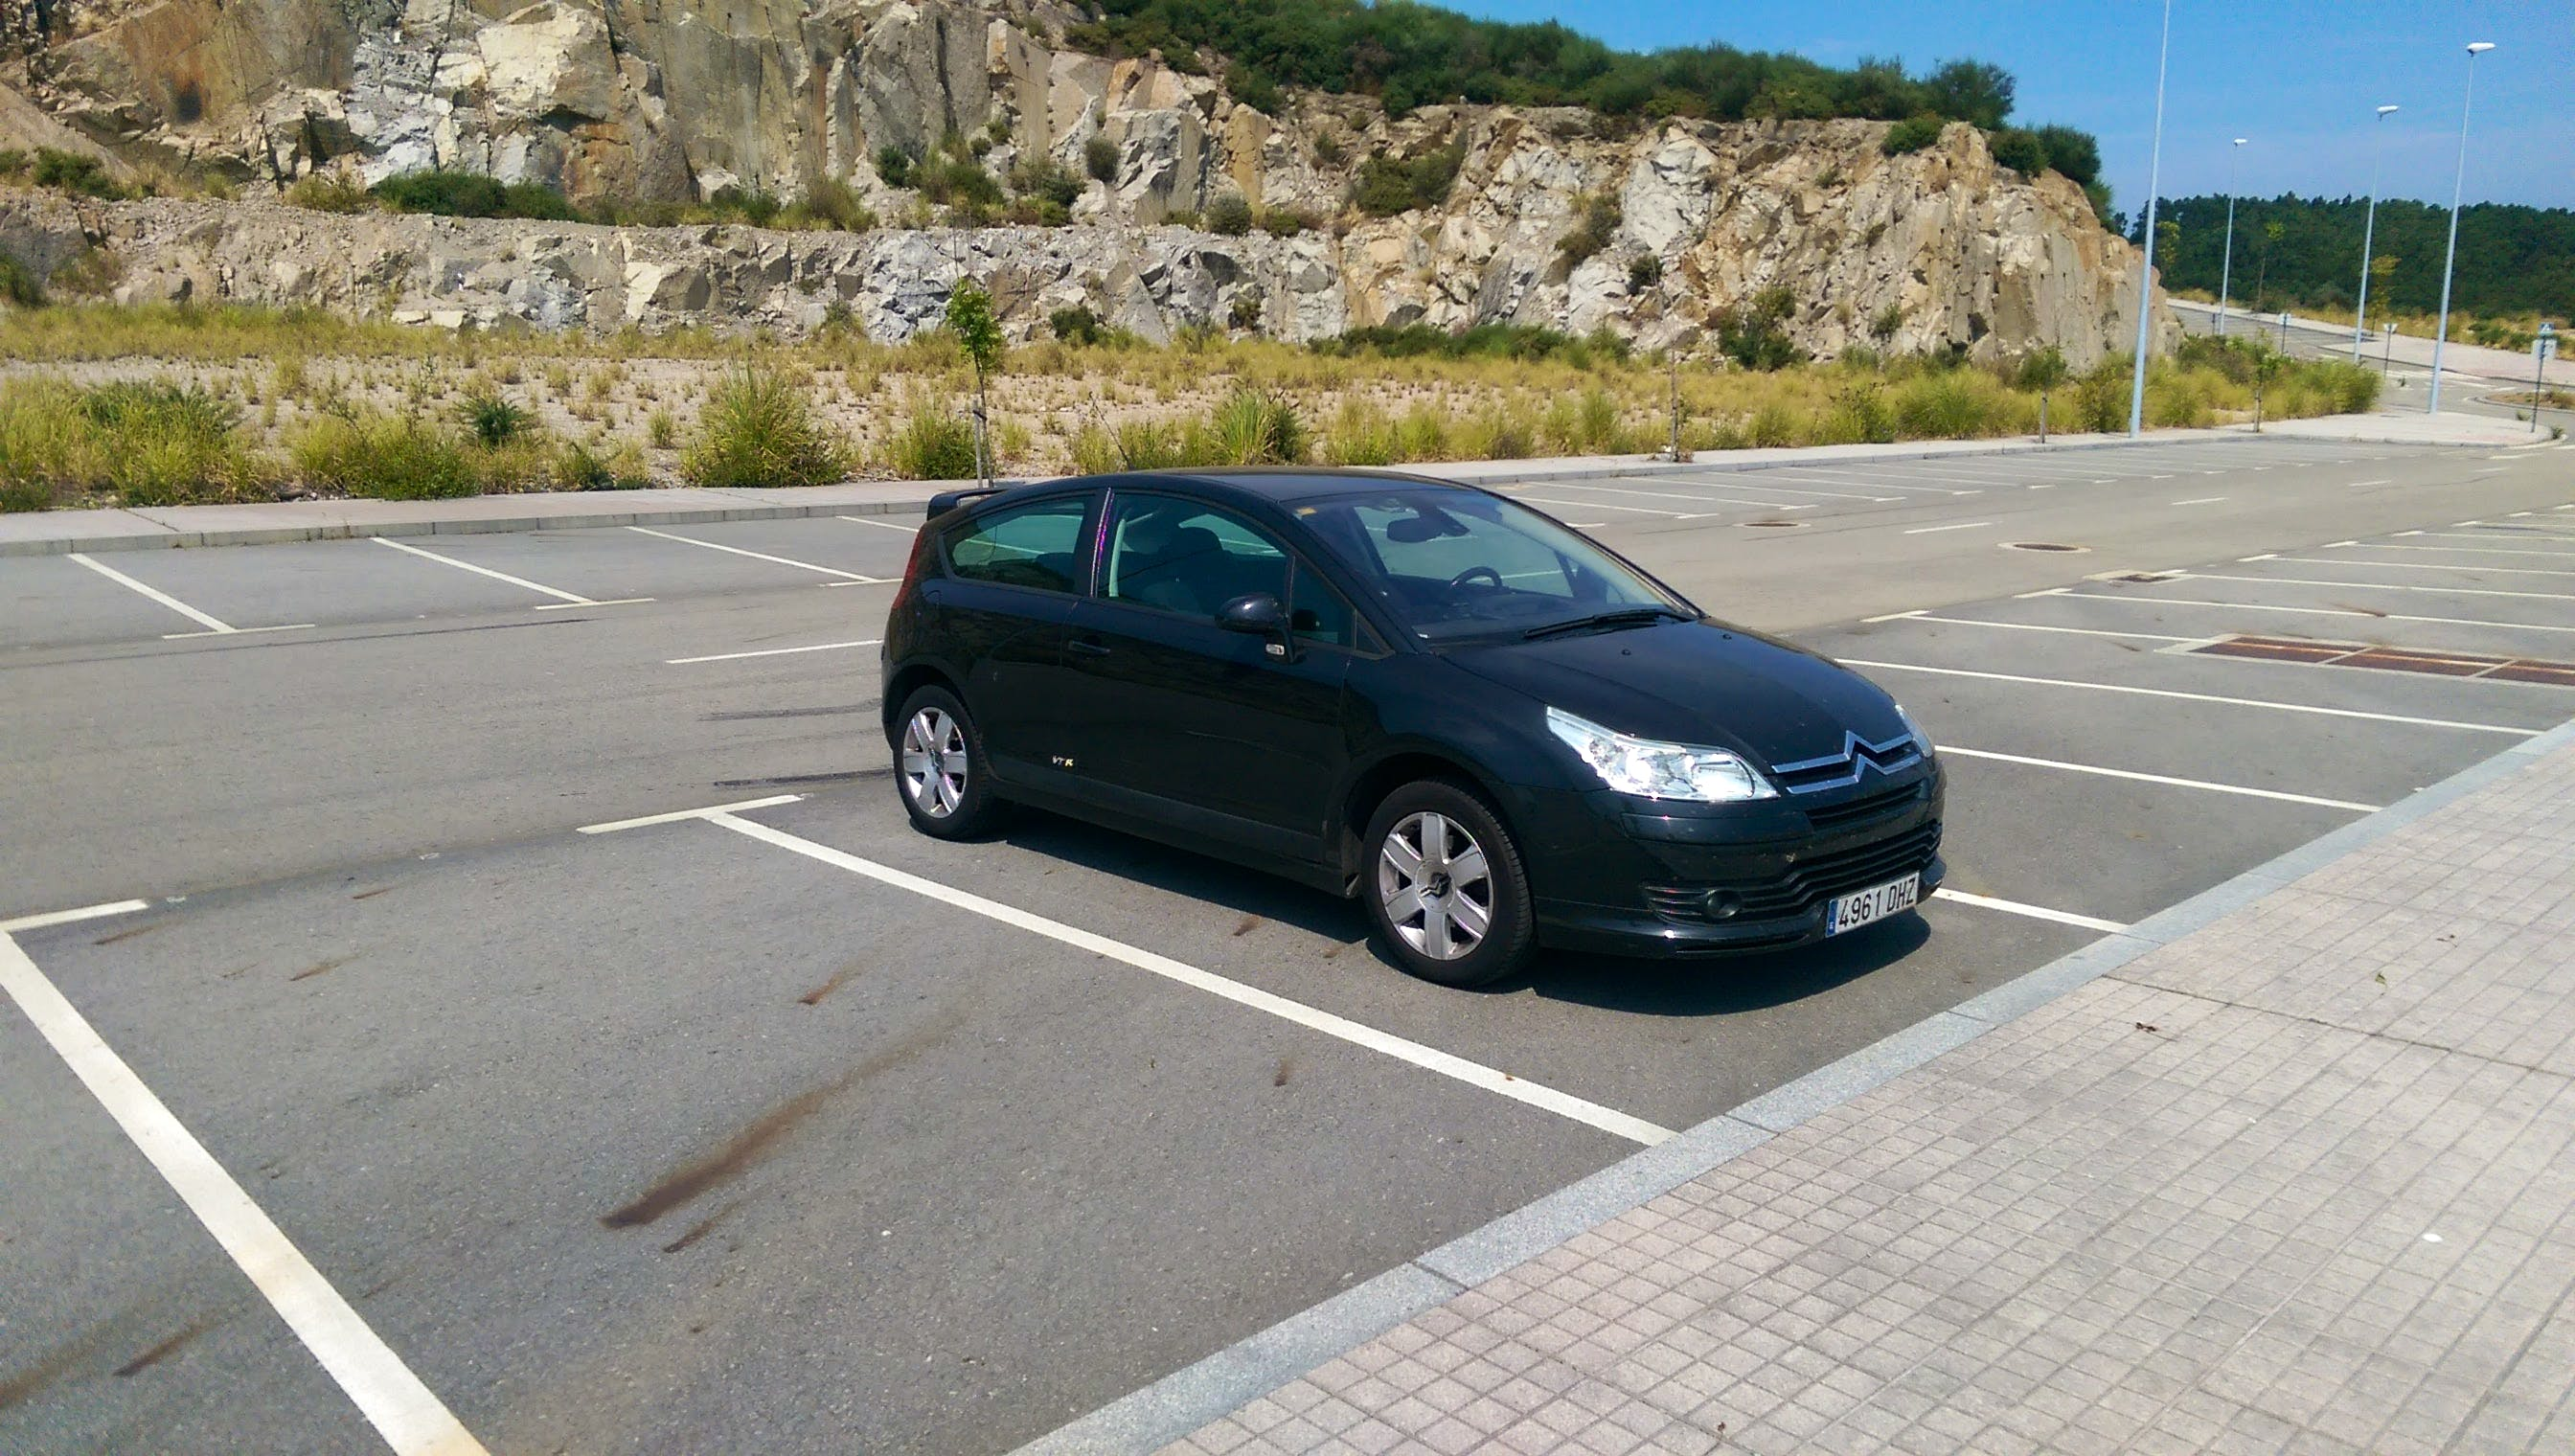 Citroen C4 Coupé VTR Plus 110 CV, 2005, Diésel